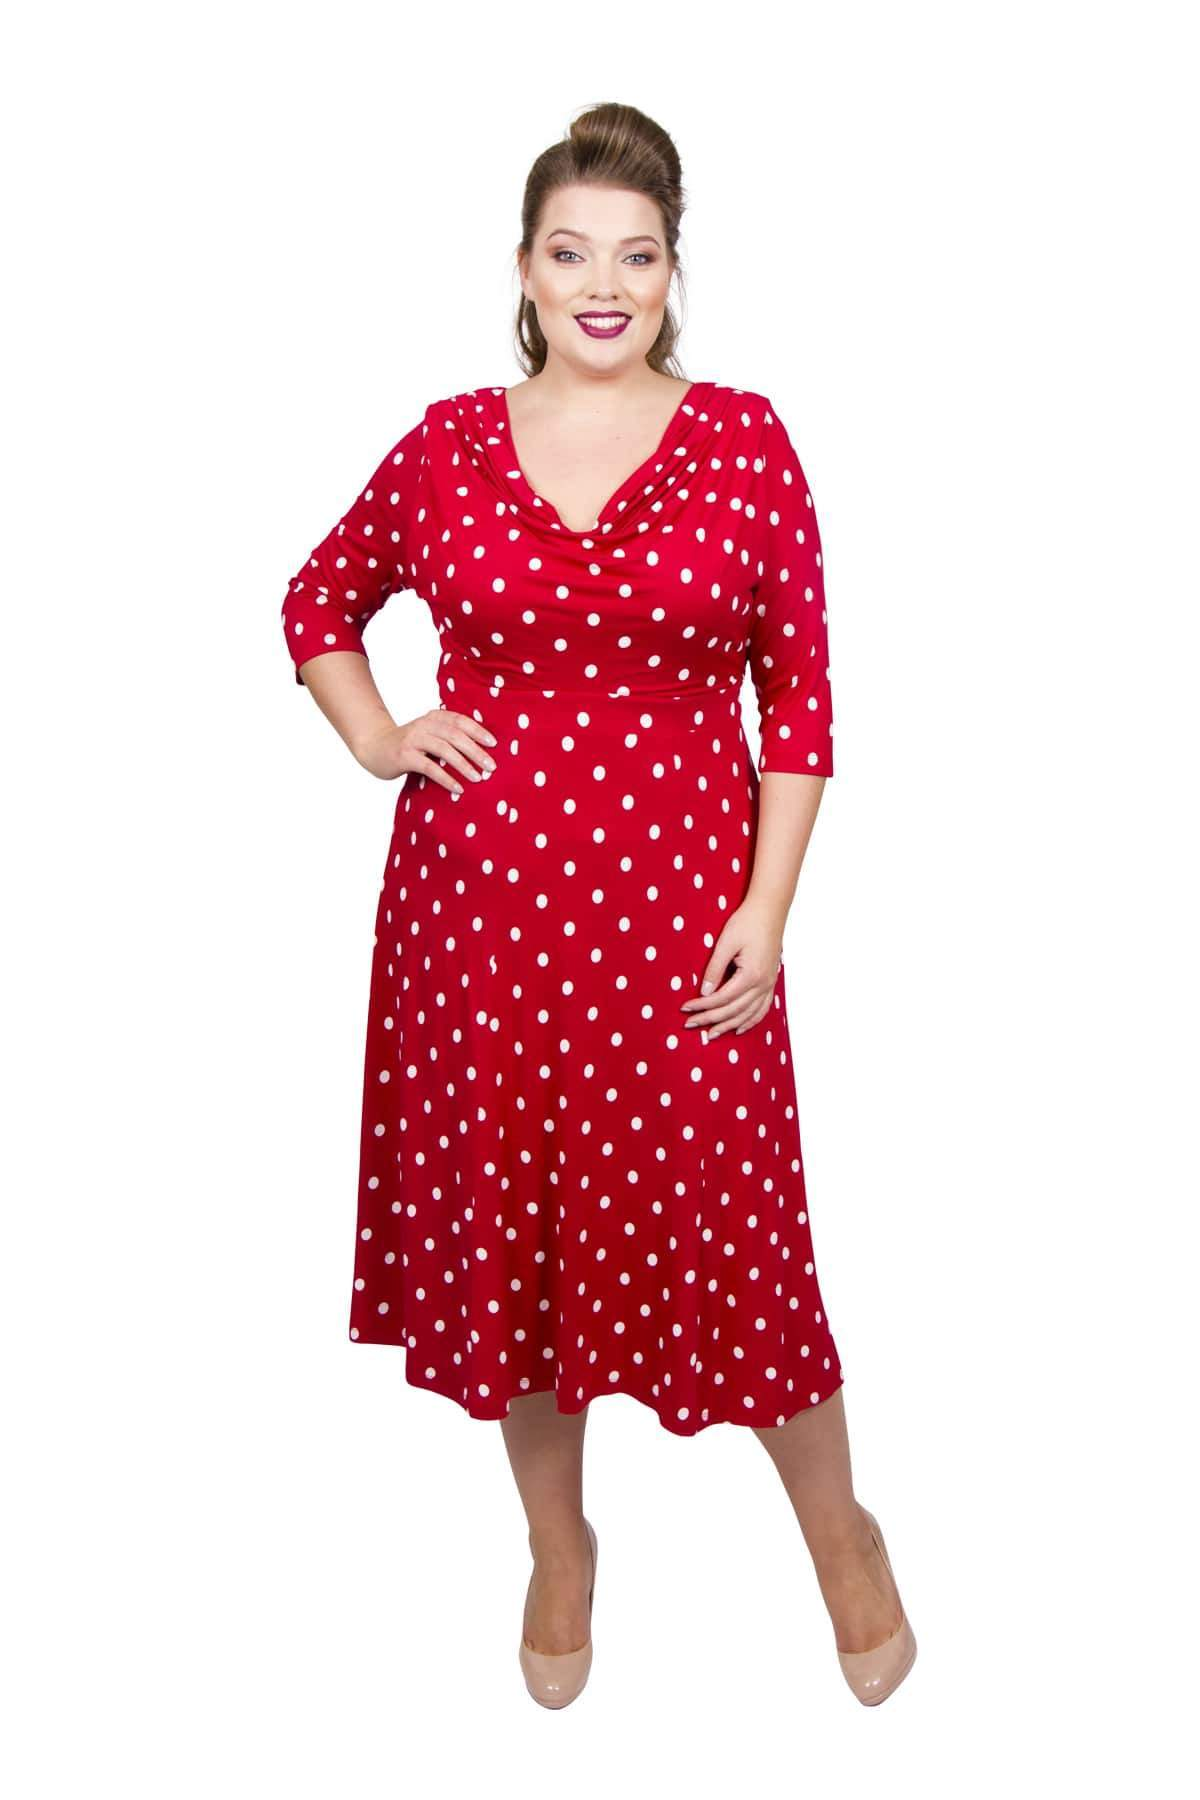 1940s Dresses and Clothing UK | 40s Shoes UK Lollidot Cowl Neck 40s Dress - SCARLETWHI  12 £60.00 AT vintagedancer.com